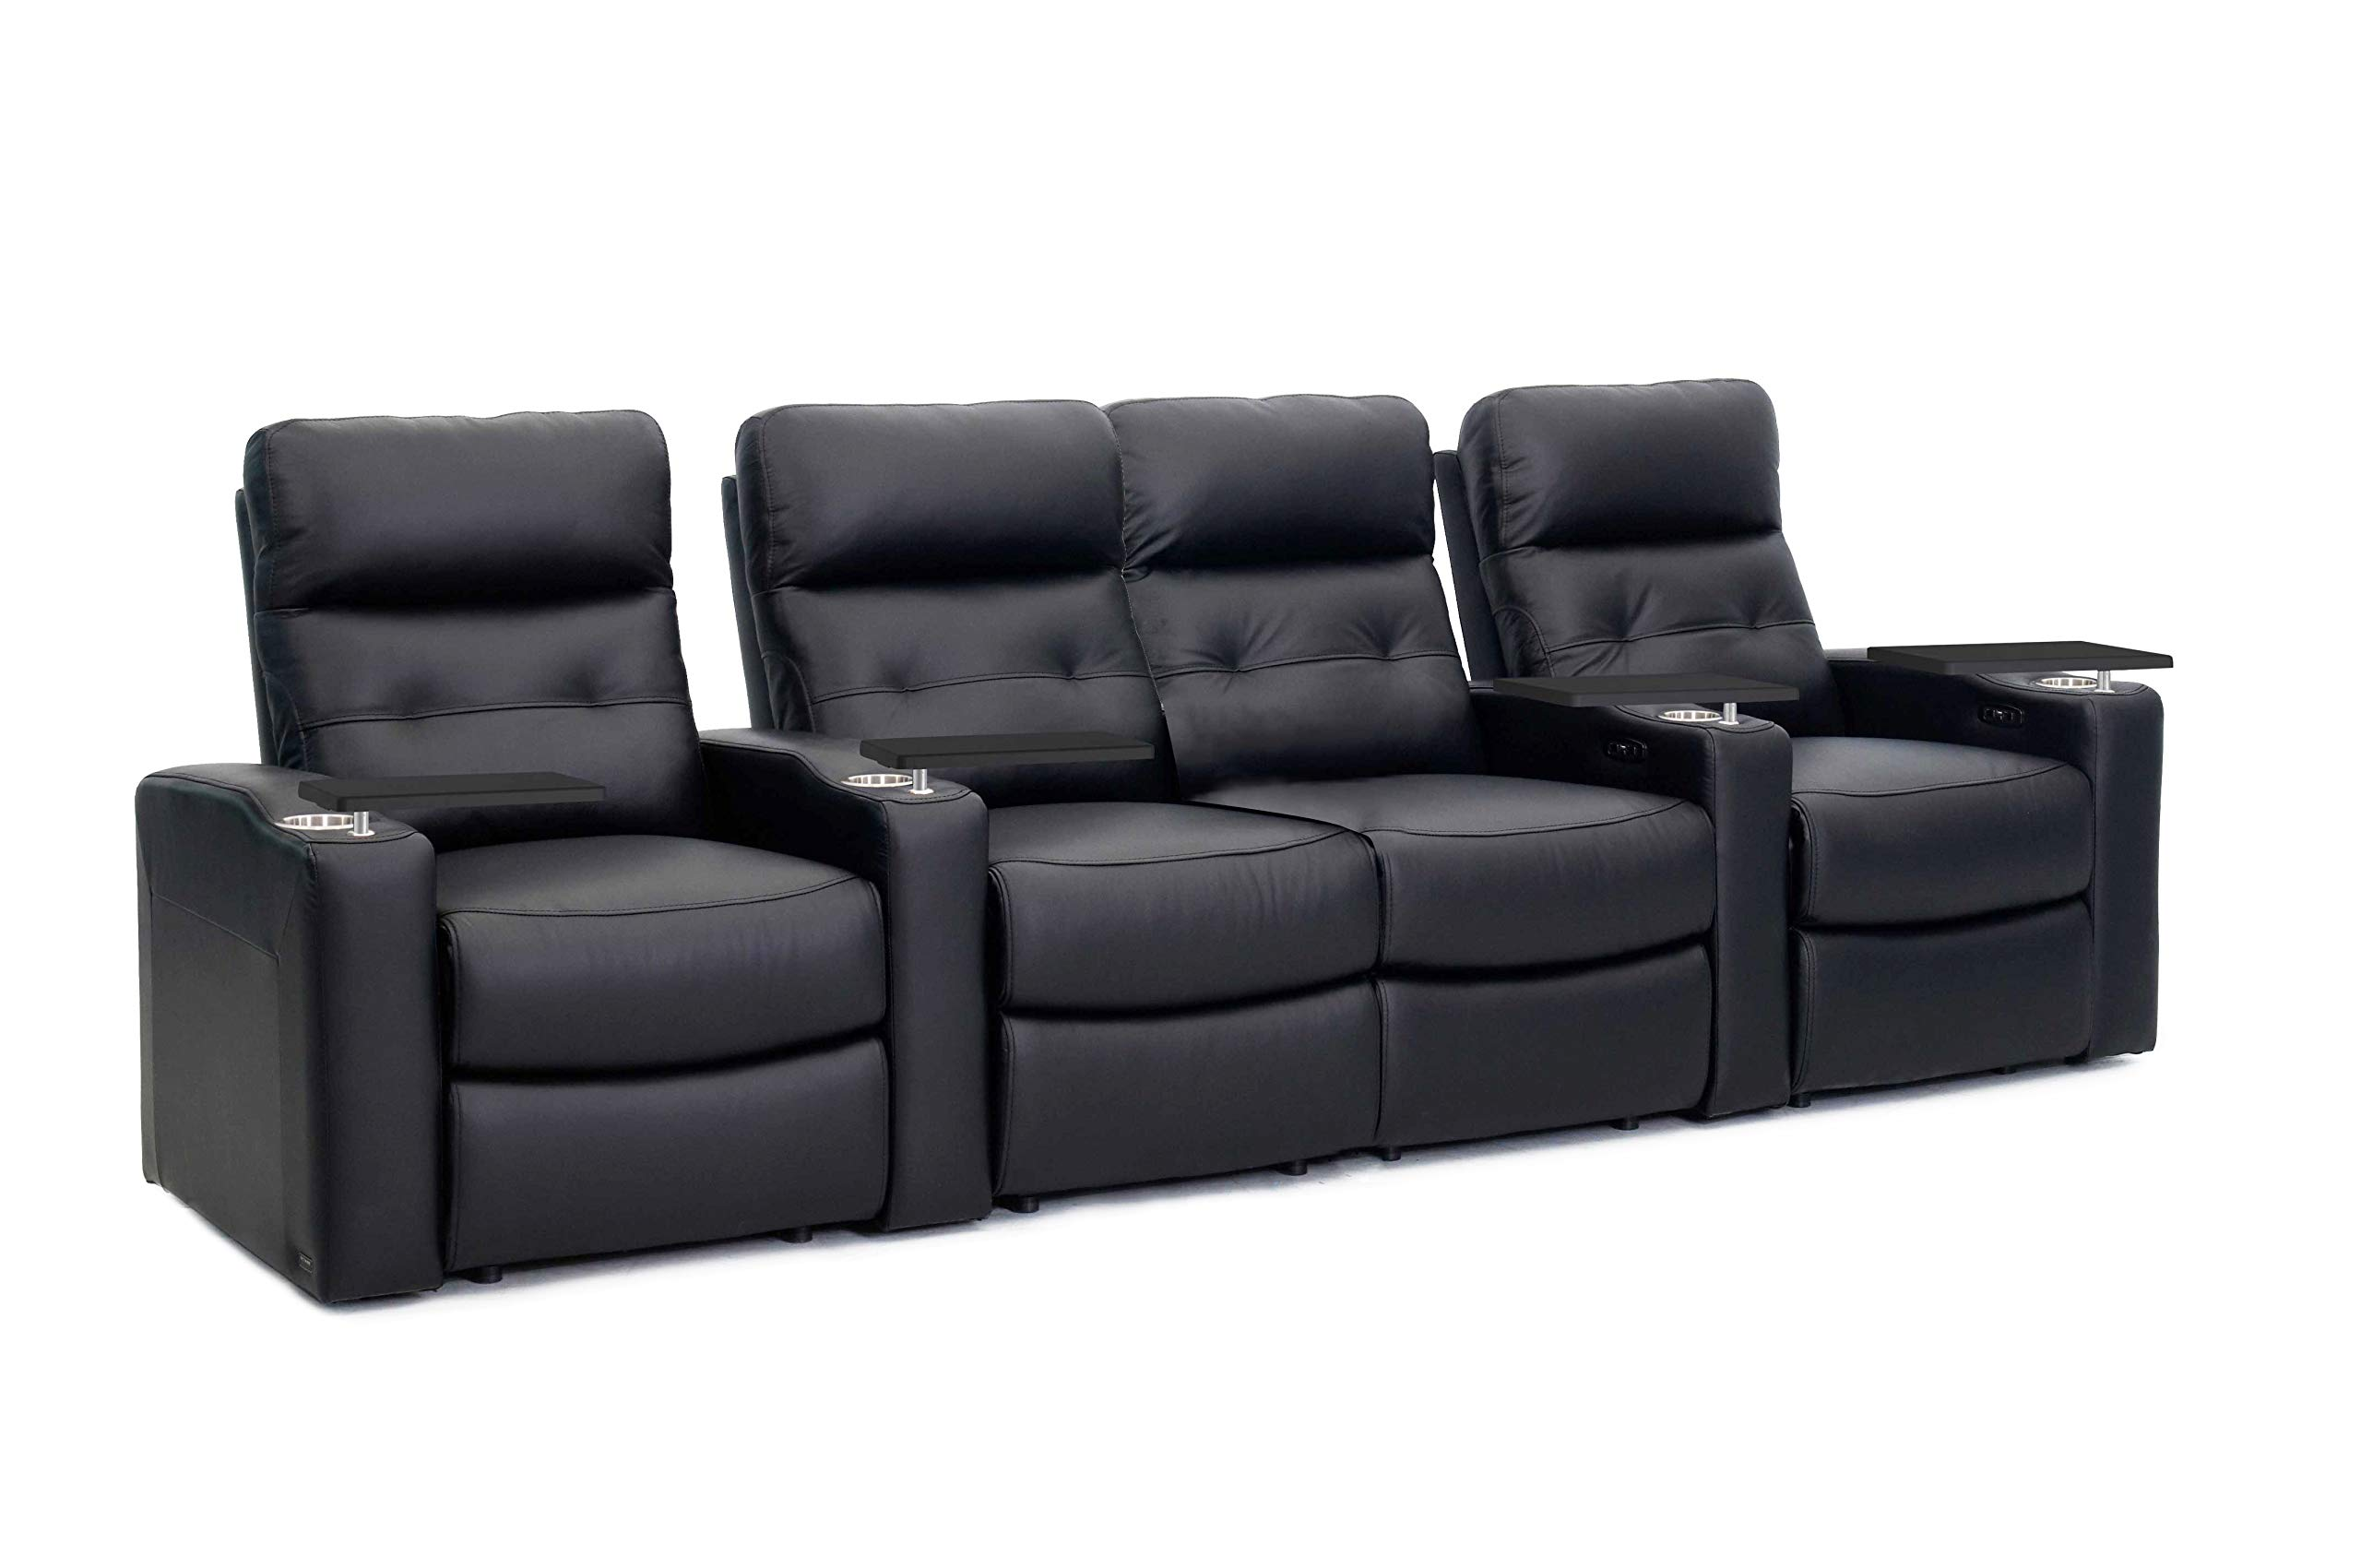 Octane Contour Leather Power Headrest & Power Recline Home Theater Recliners, Black (Set of 4) by Octane Seating